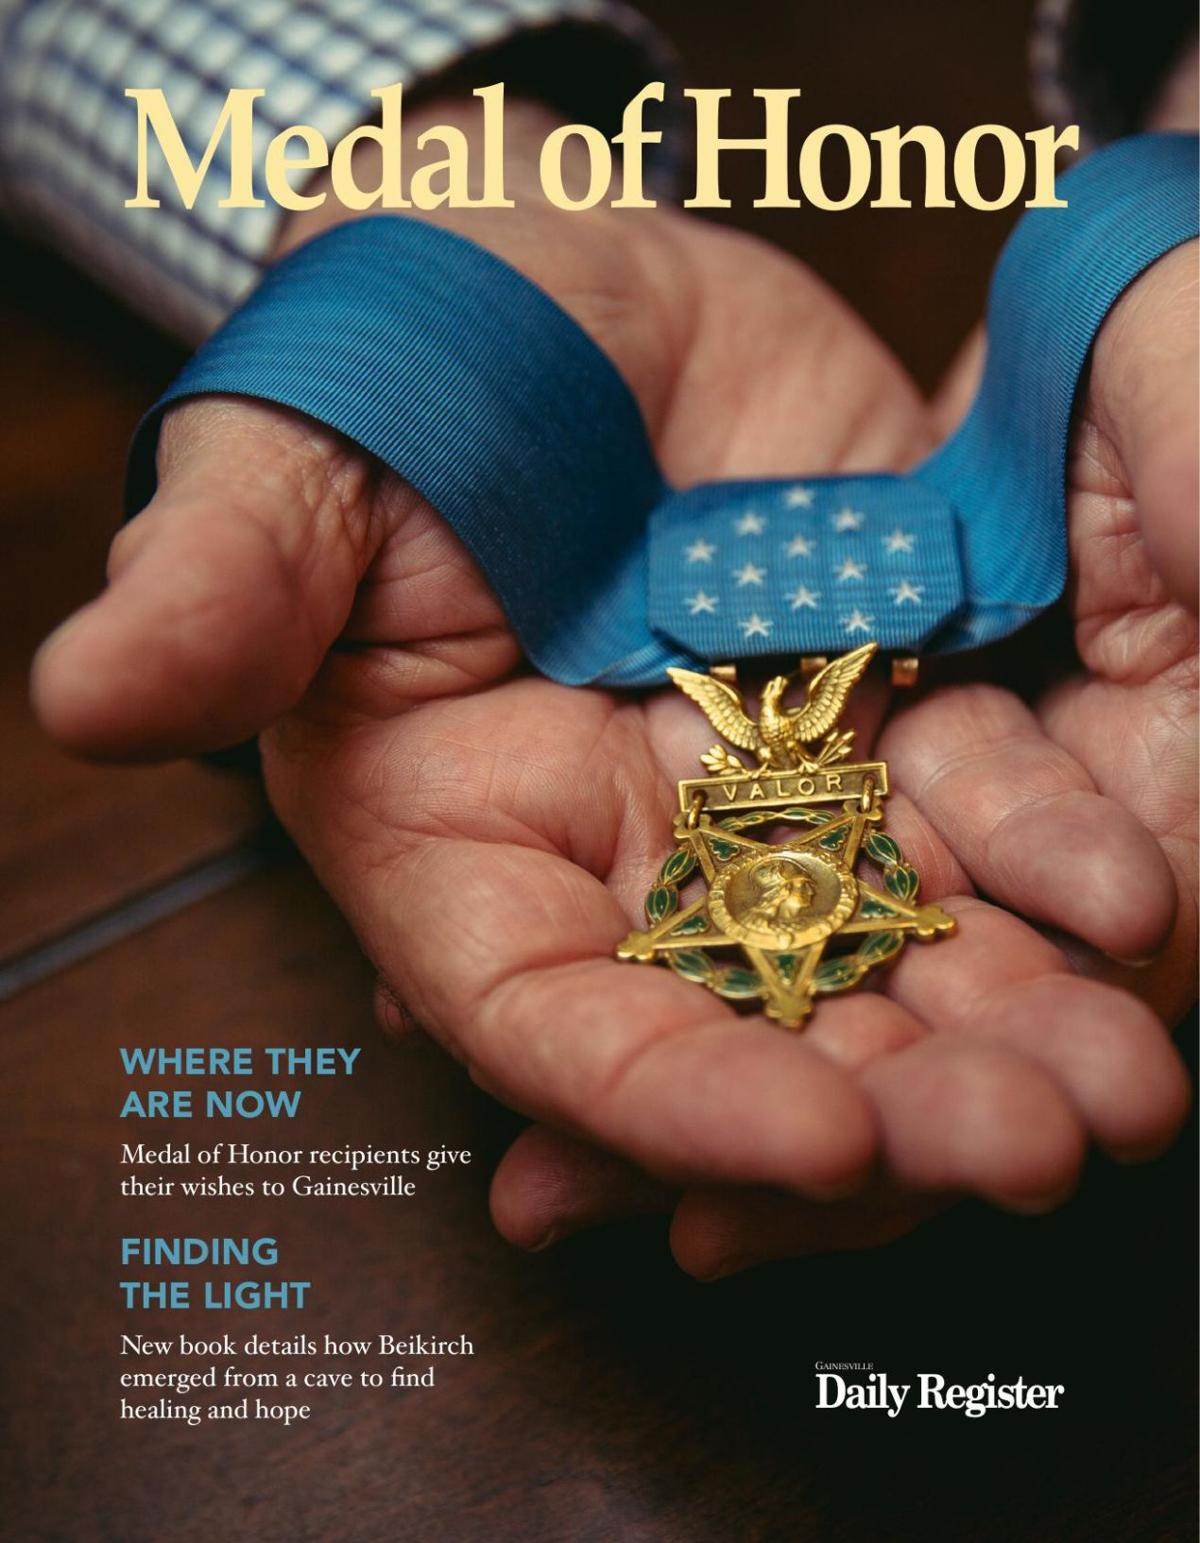 Medal of Honor 2020 magazine